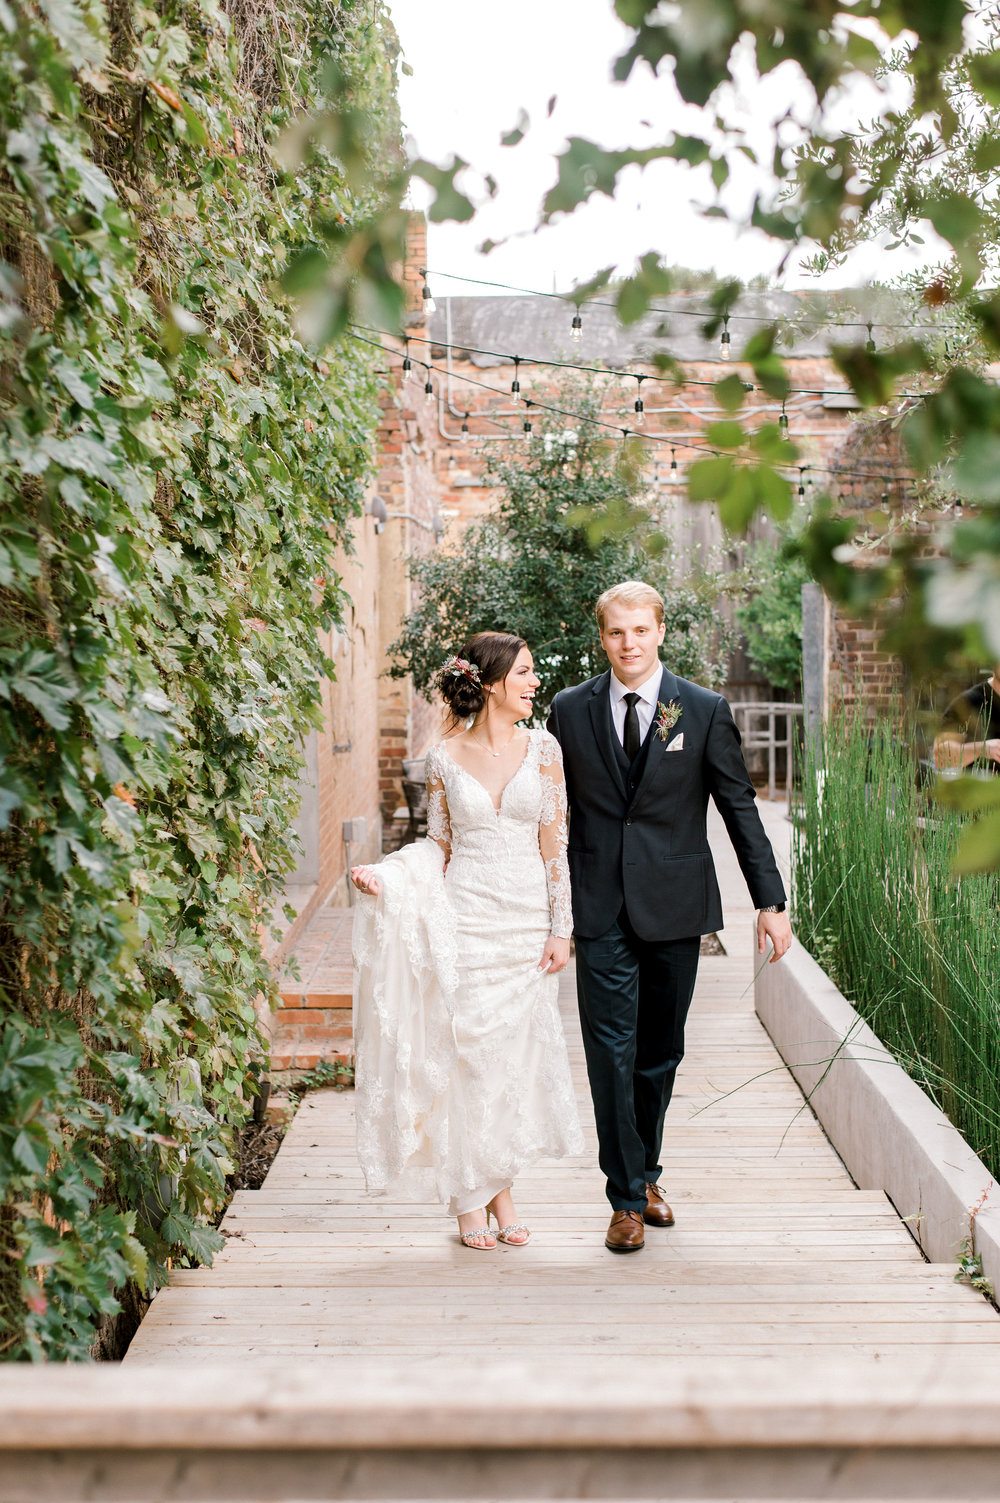 Bride and Groom Portraits | Downtown Fort Worth Industrial Modern Wedding